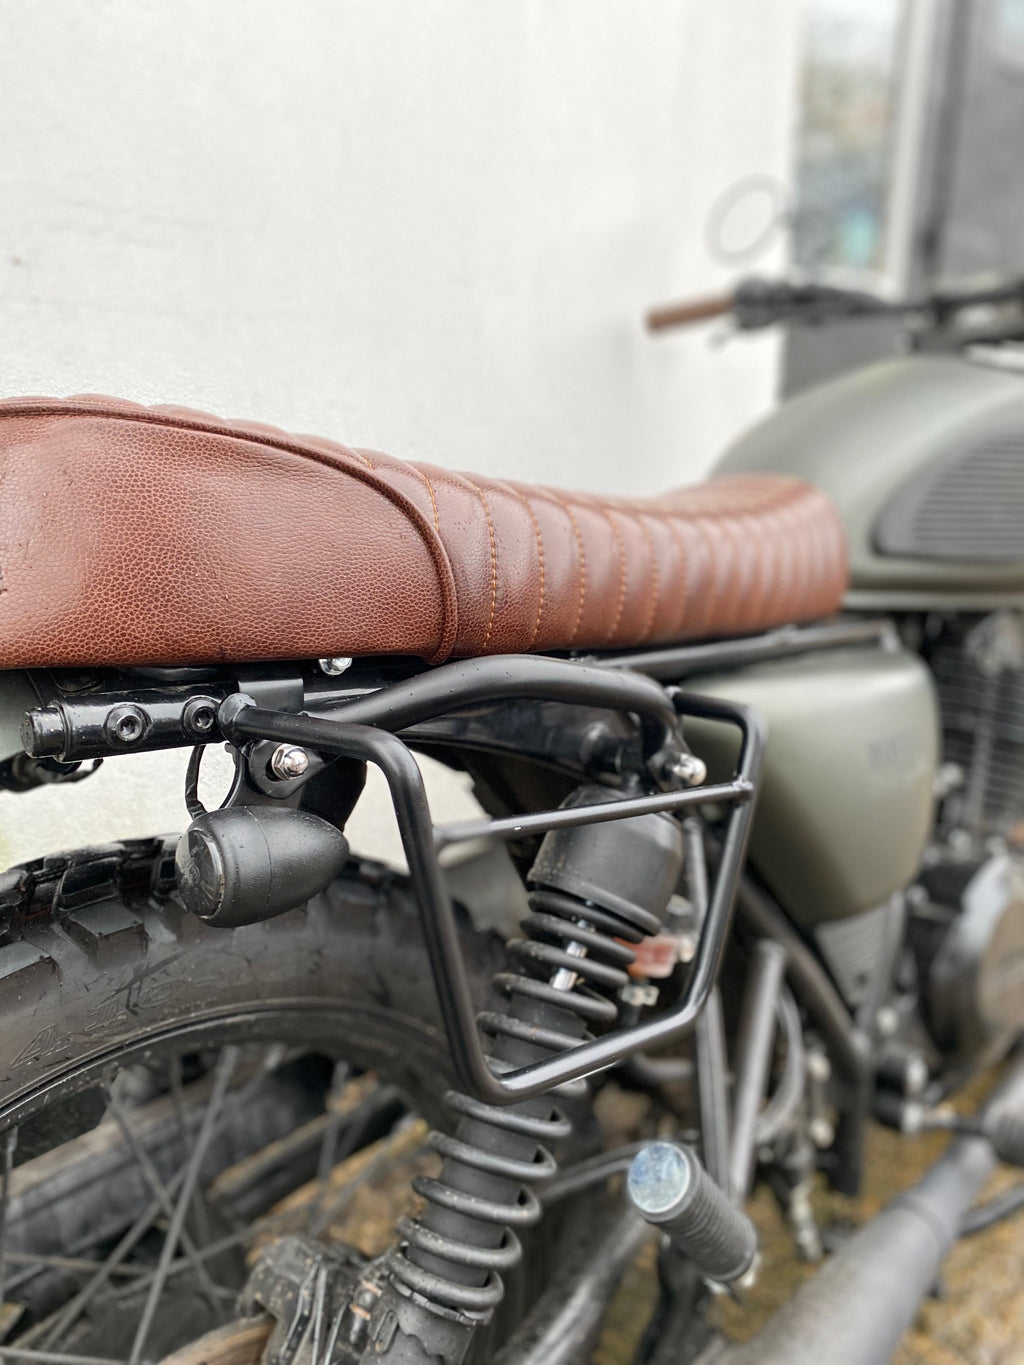 Bag Bracket - Mutt Motorcycle